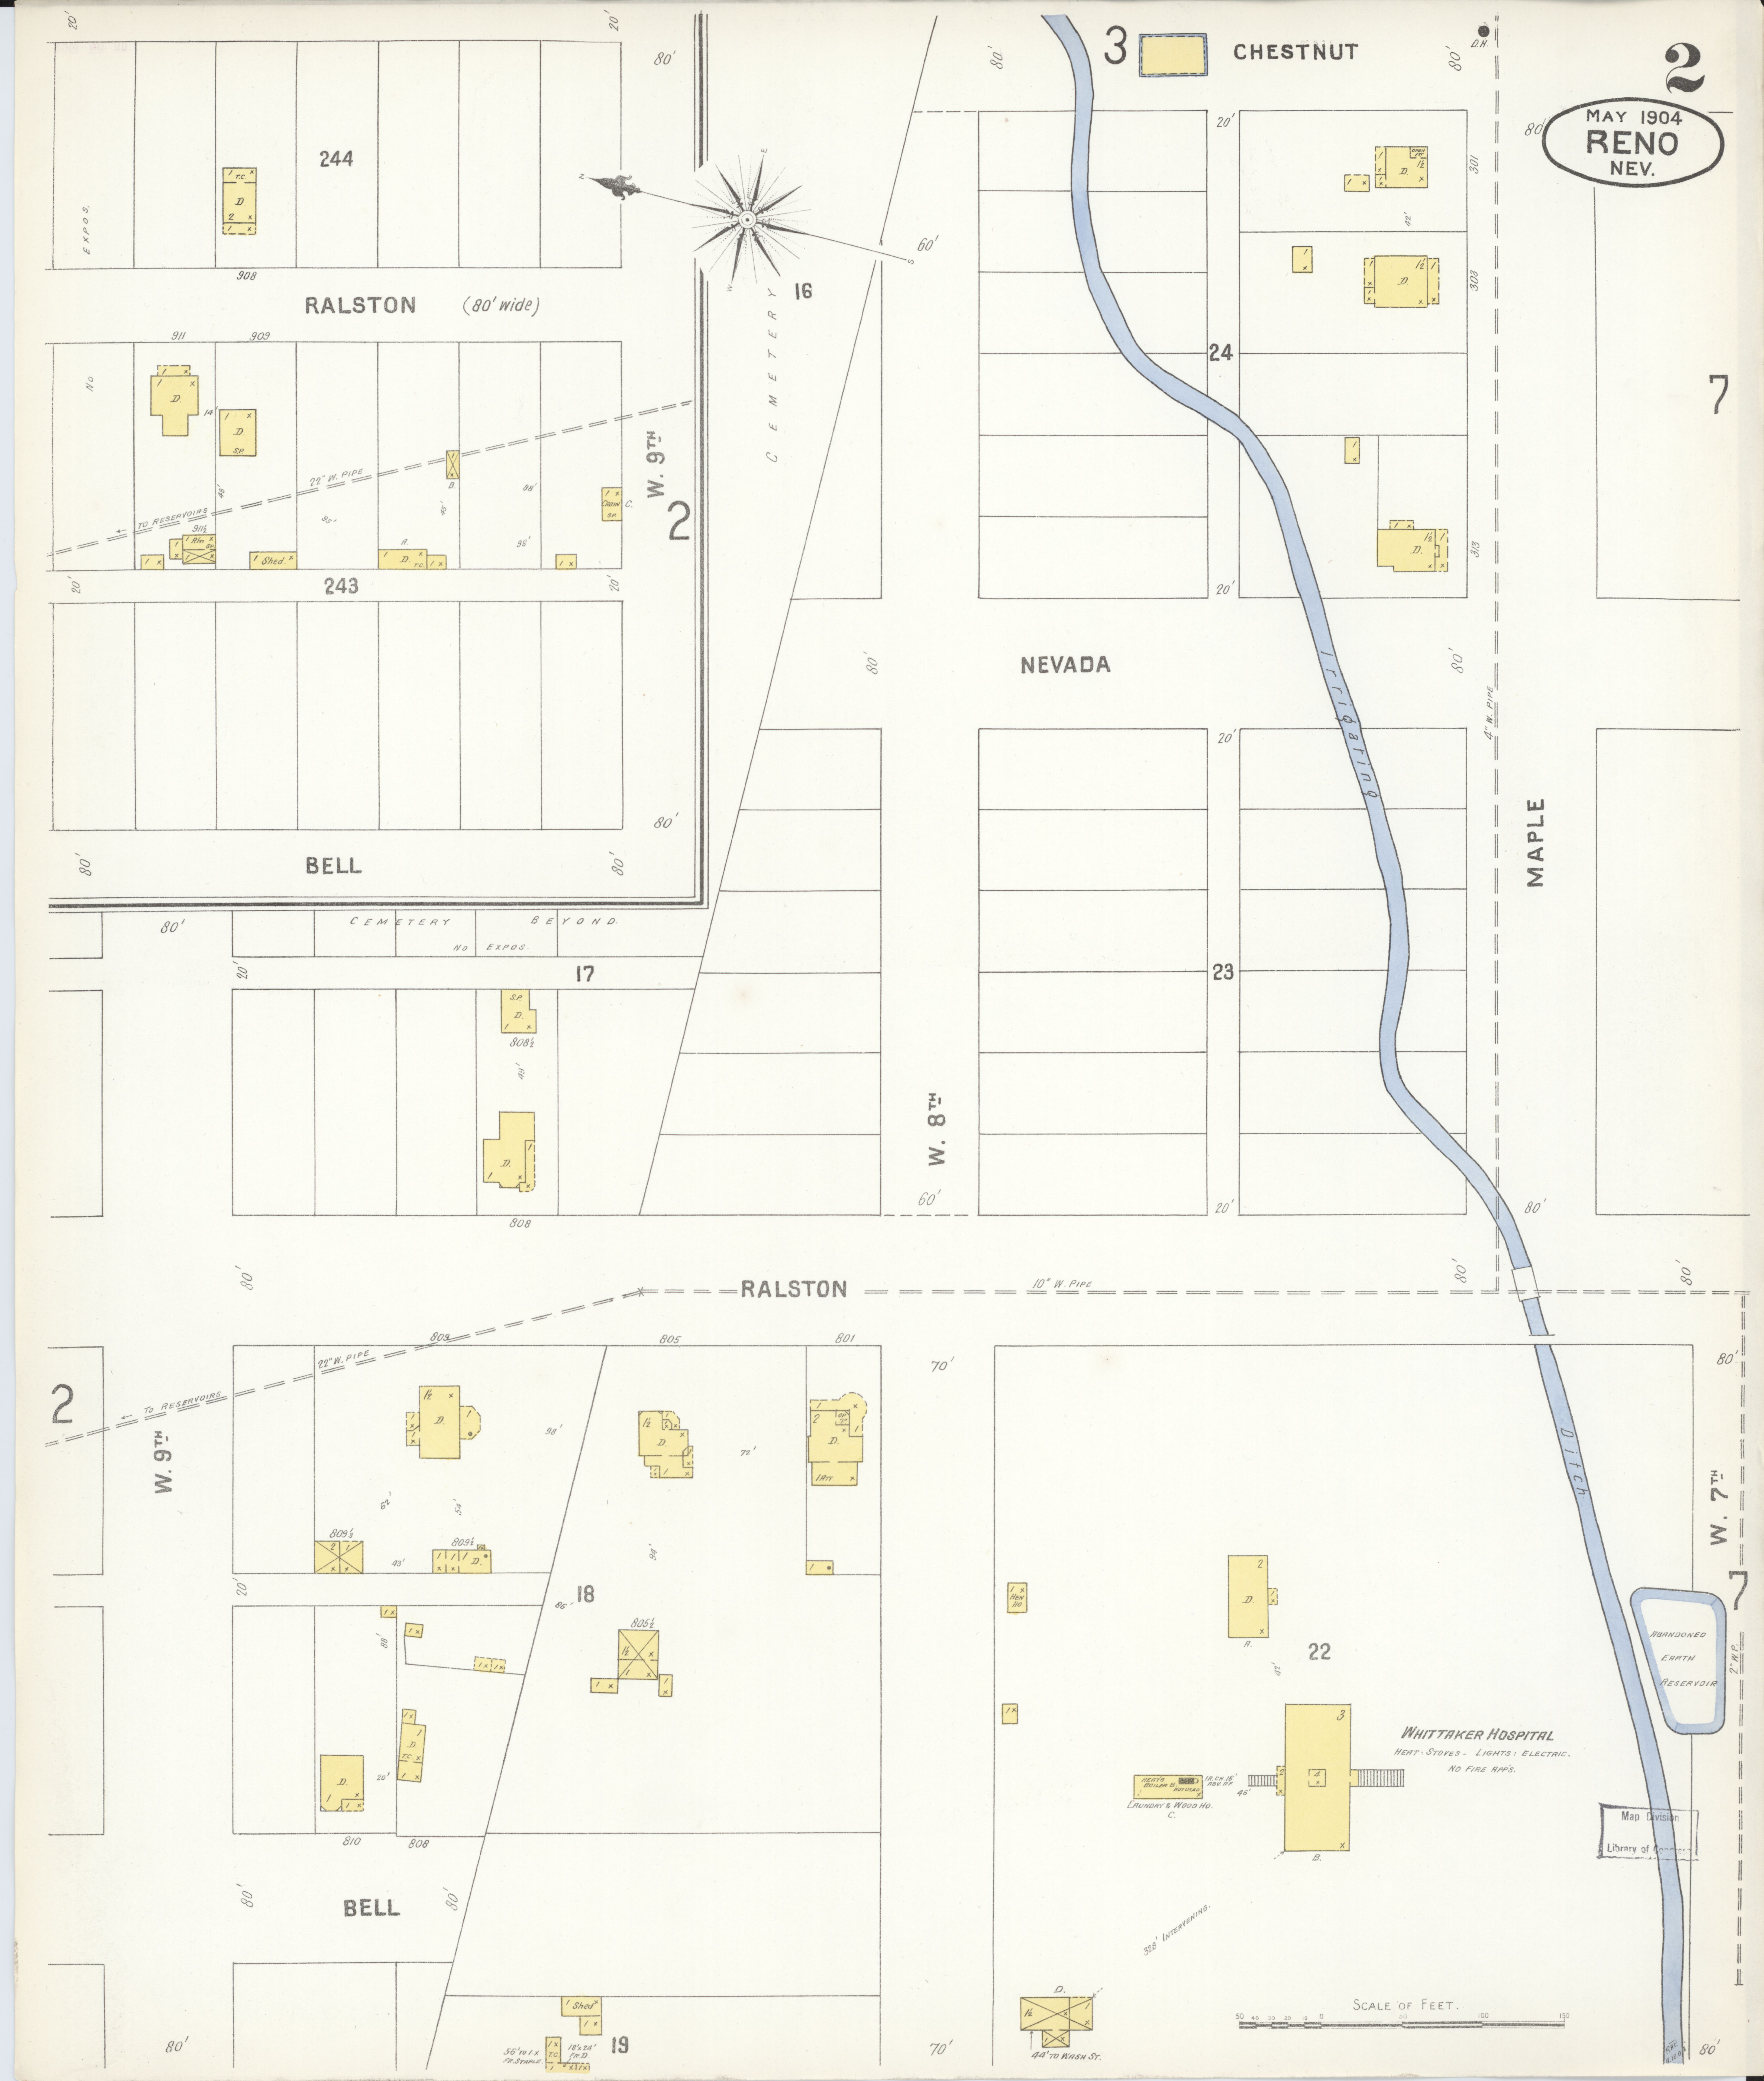 Map Of Reno on map of cerritos, map of high desert, map of carlin, map of agawam, map of unr, map of kewaunee, map of the san francisco, map of tampa st petersburg, map of colonial heights, map of hadley, map nv, map of ironwood, map of valley of fire, map of ritzville, map nevada, map of west acres, map of pleasant valley, map of central ma, map of fernley, map of monterrey mx,